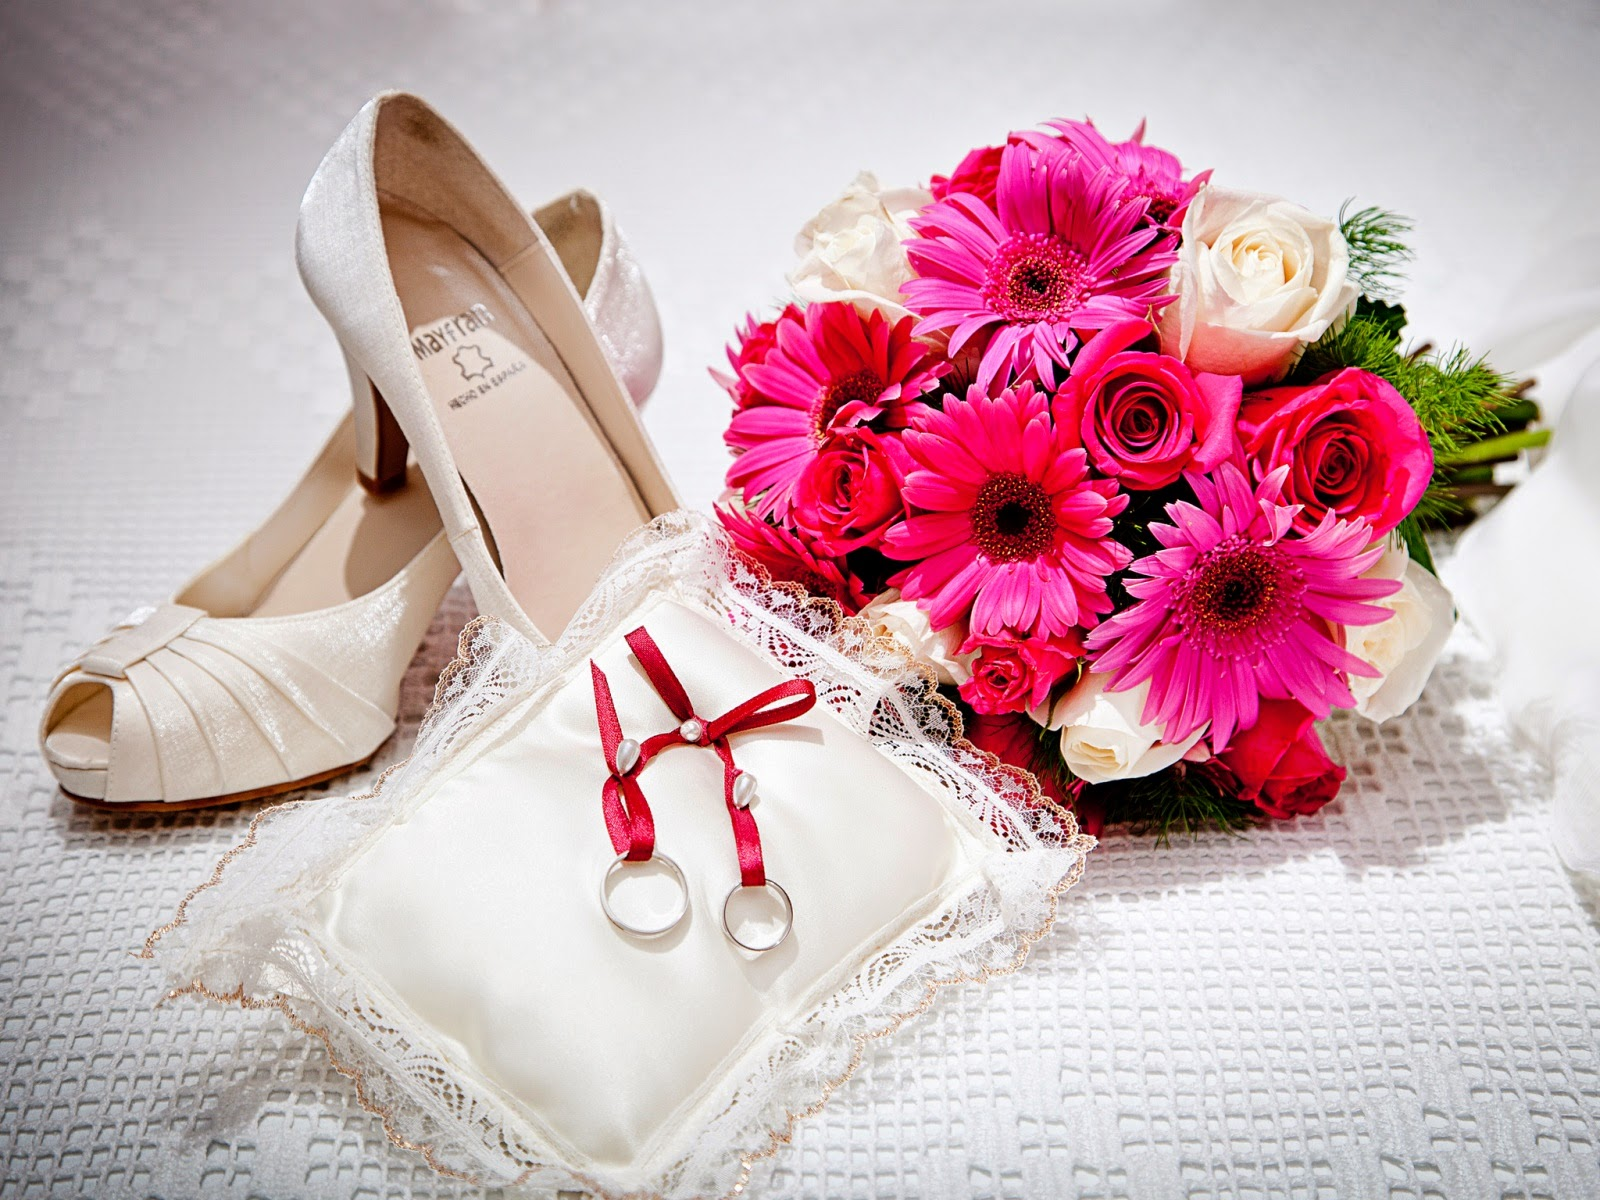 Top 10 Wedding Websites in USA And Worldwide